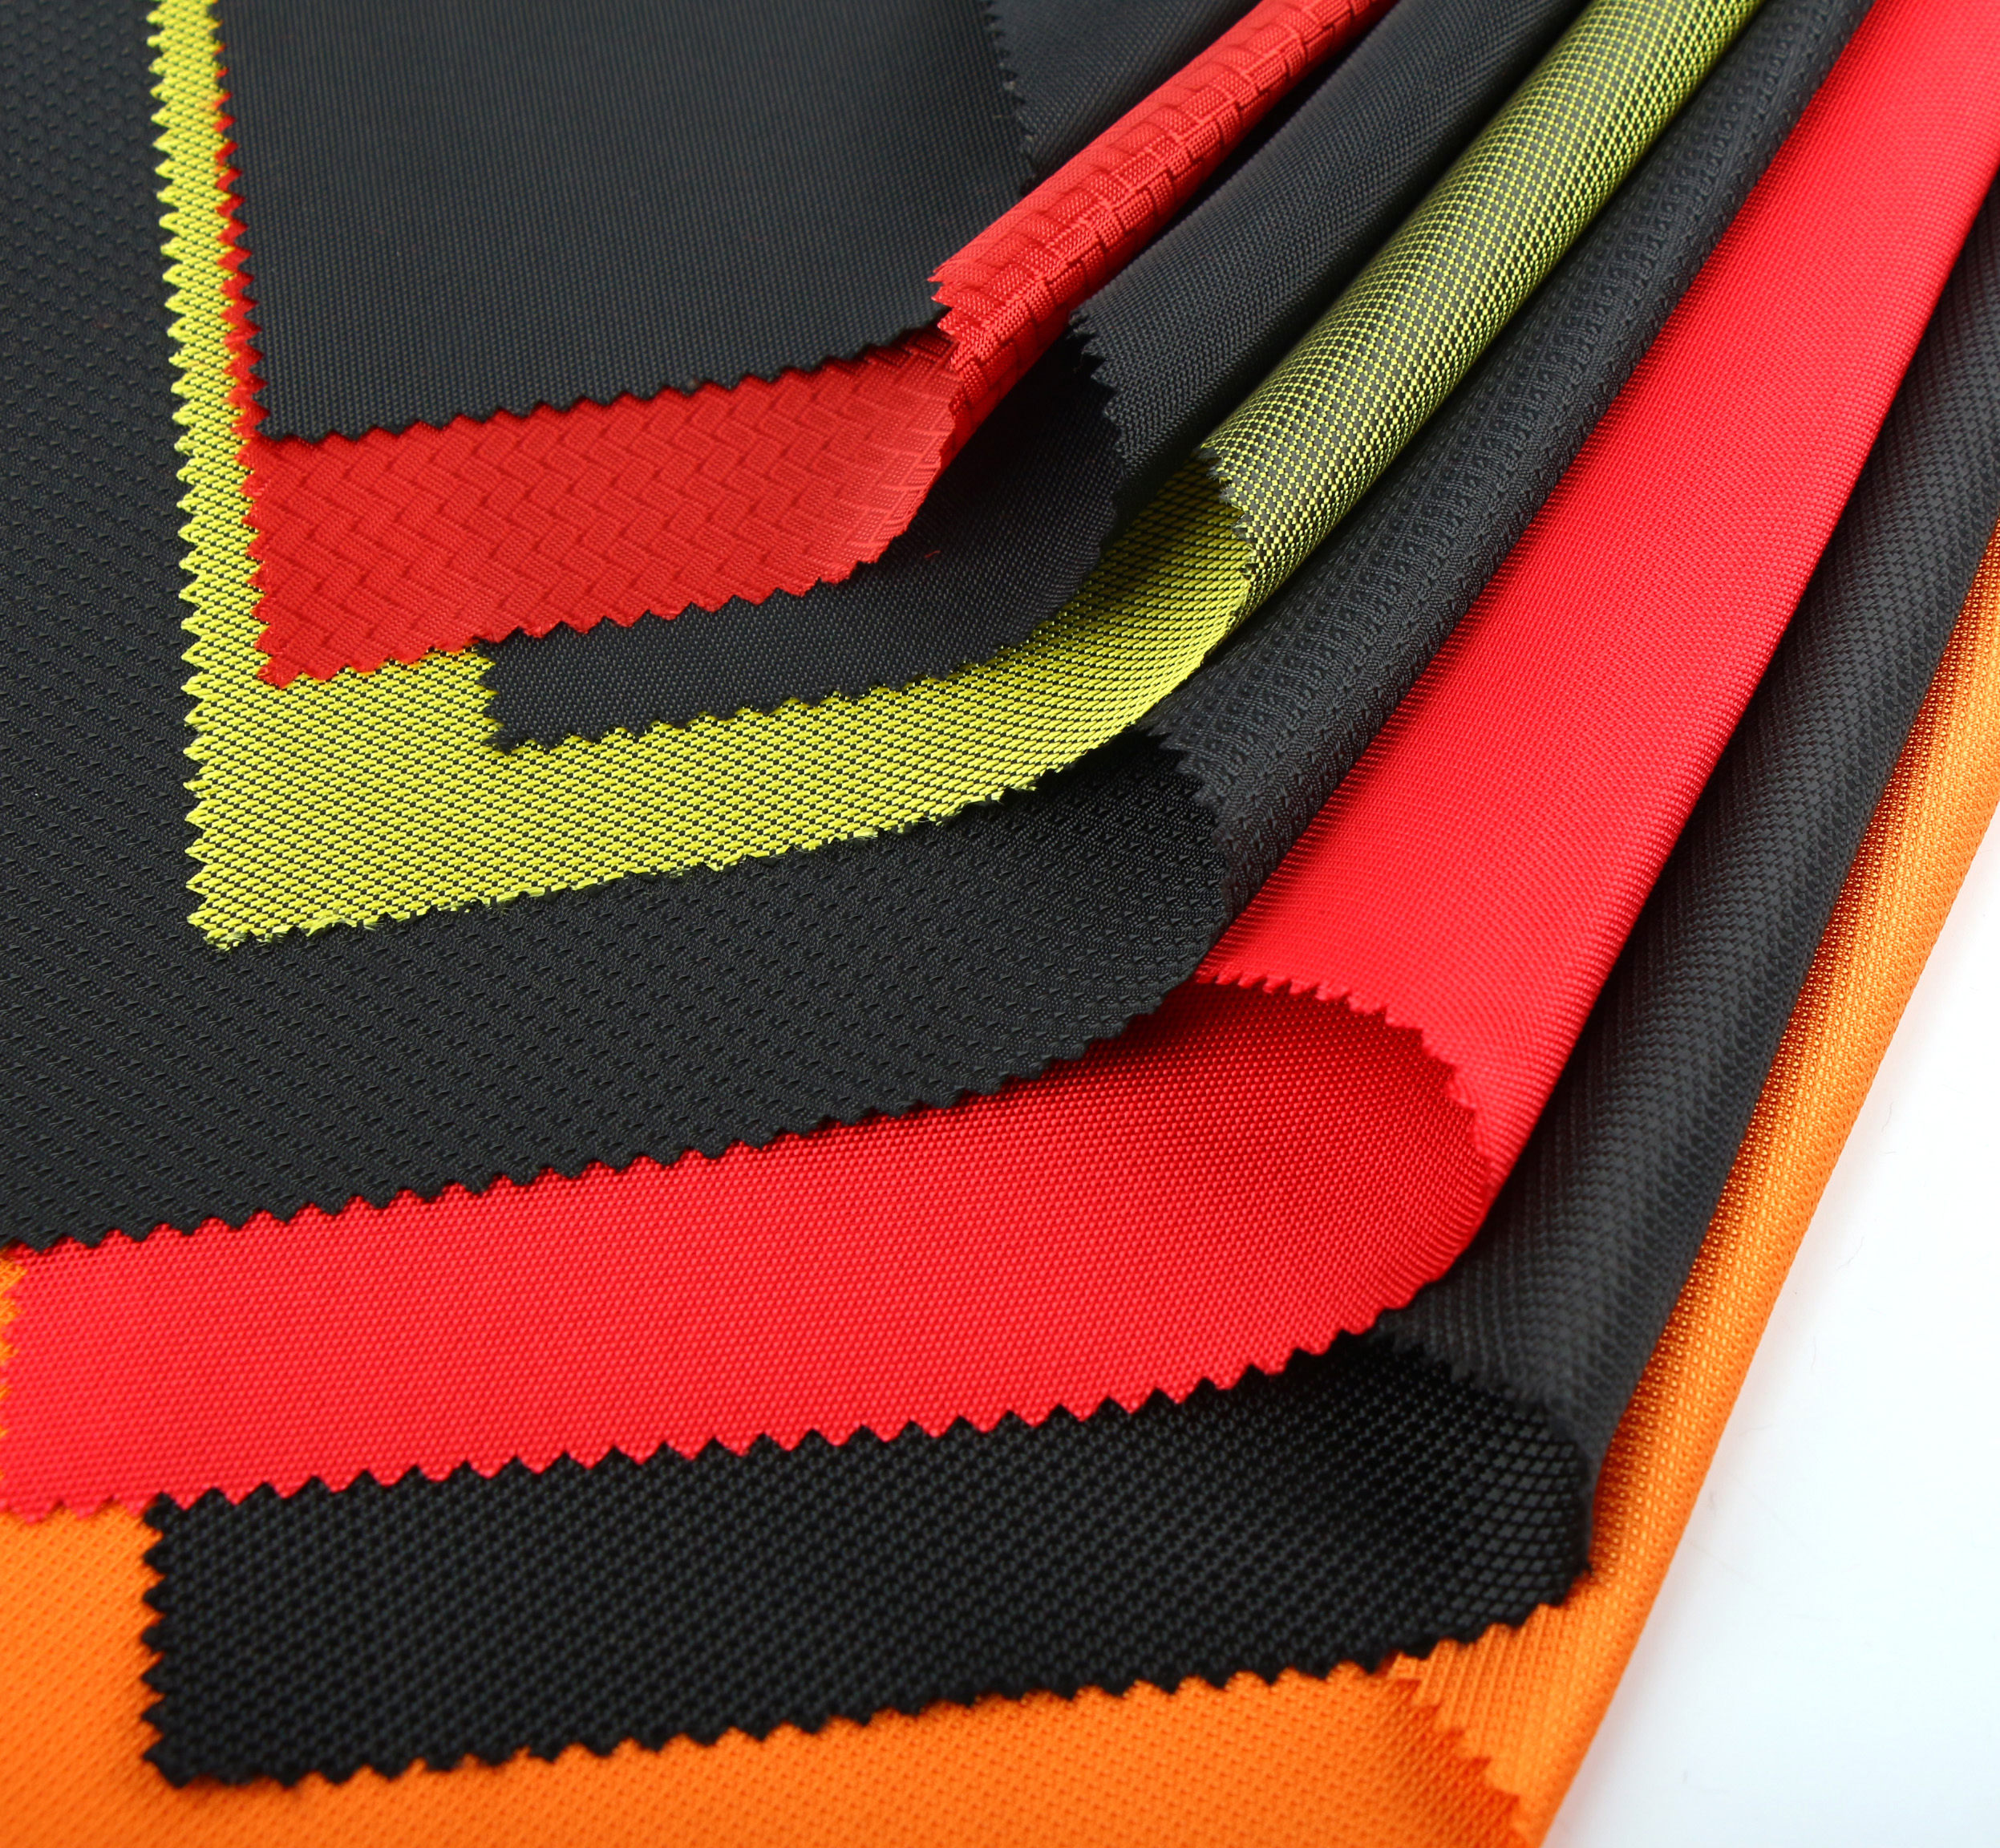 300D Jacquard Polyester Oxford fabric have WR Coated for luggage bags coats